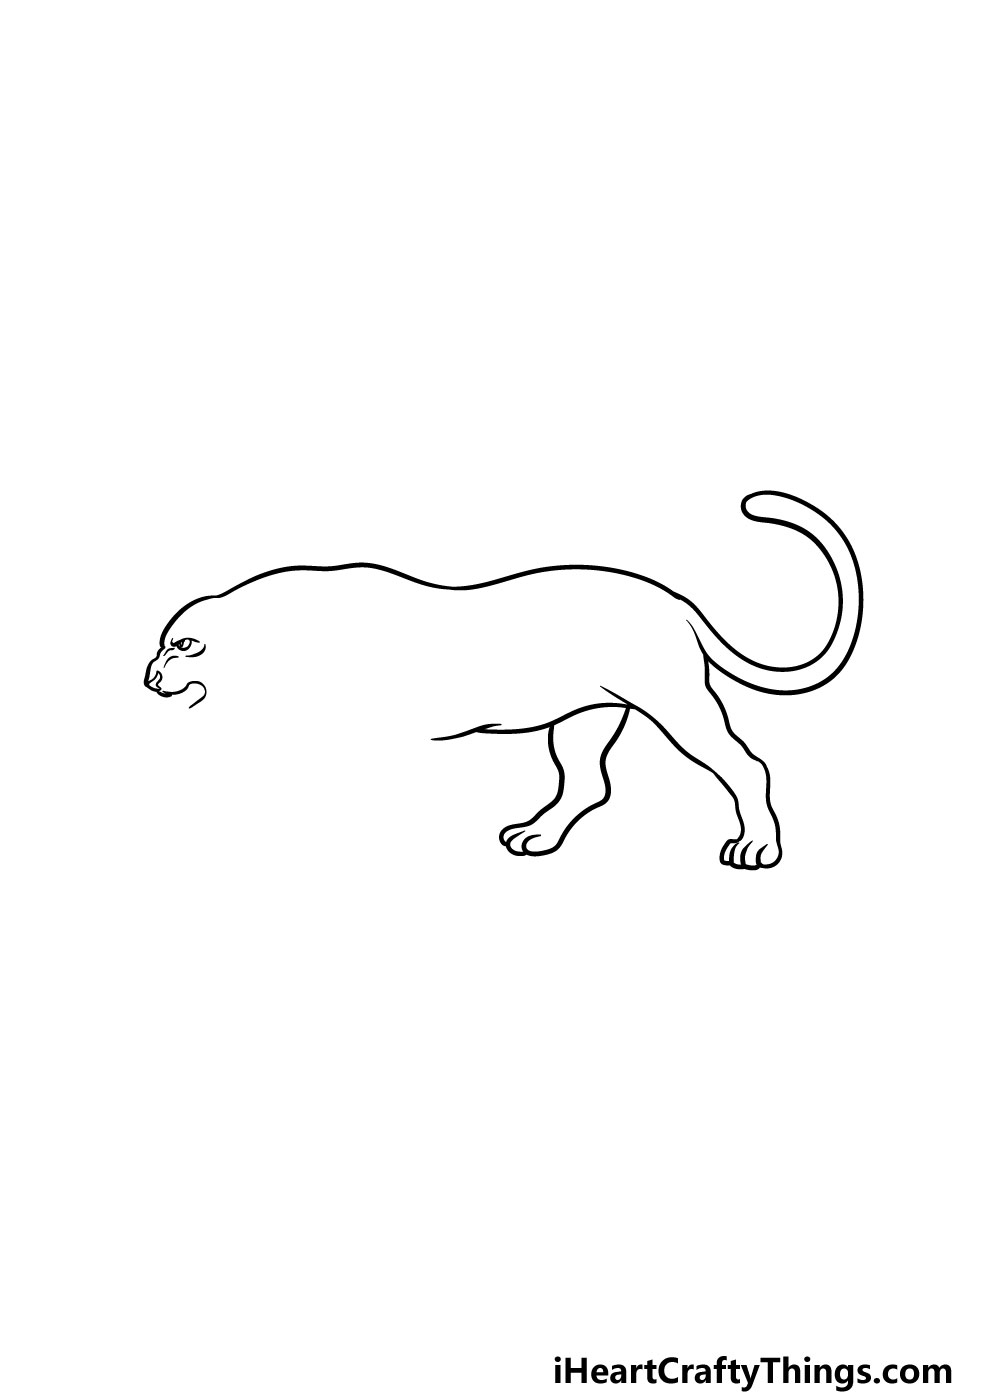 drawing a panther step 3